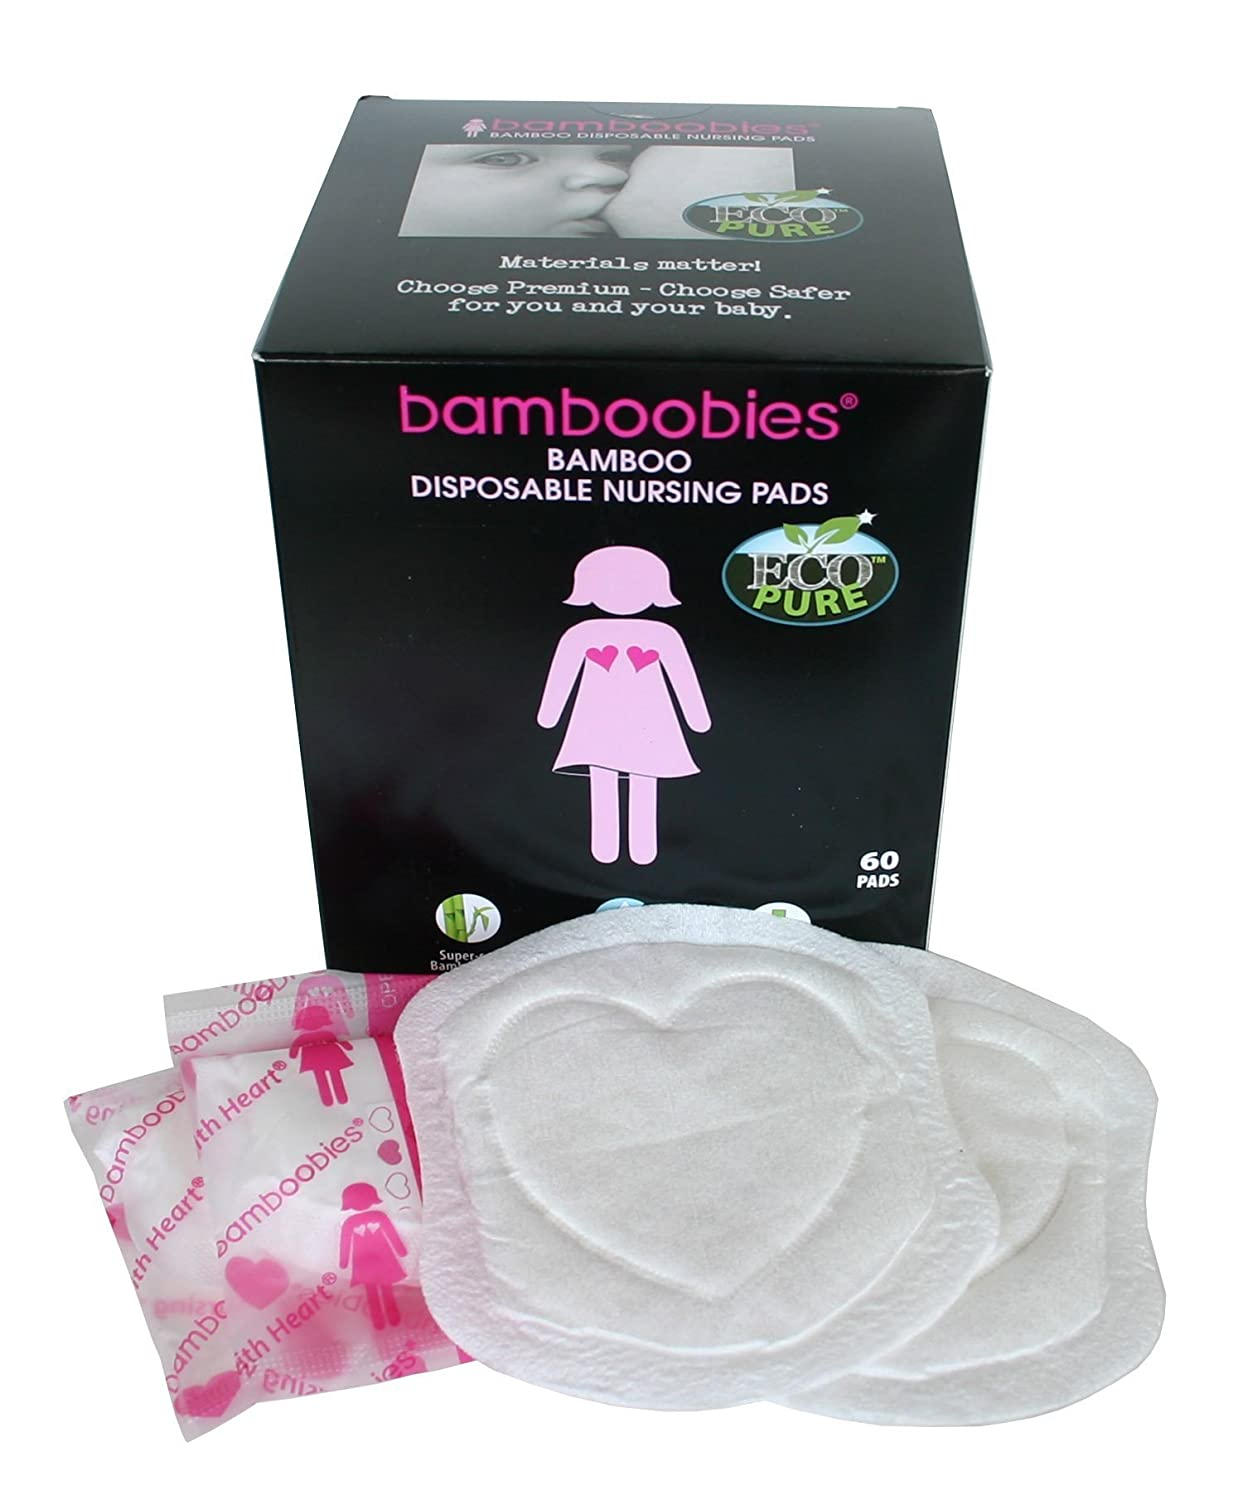 bamboobies 2 Piece Disposable Nursing Pads for Breastfeeding, 60 Count SOFT Style Inc. DISP1